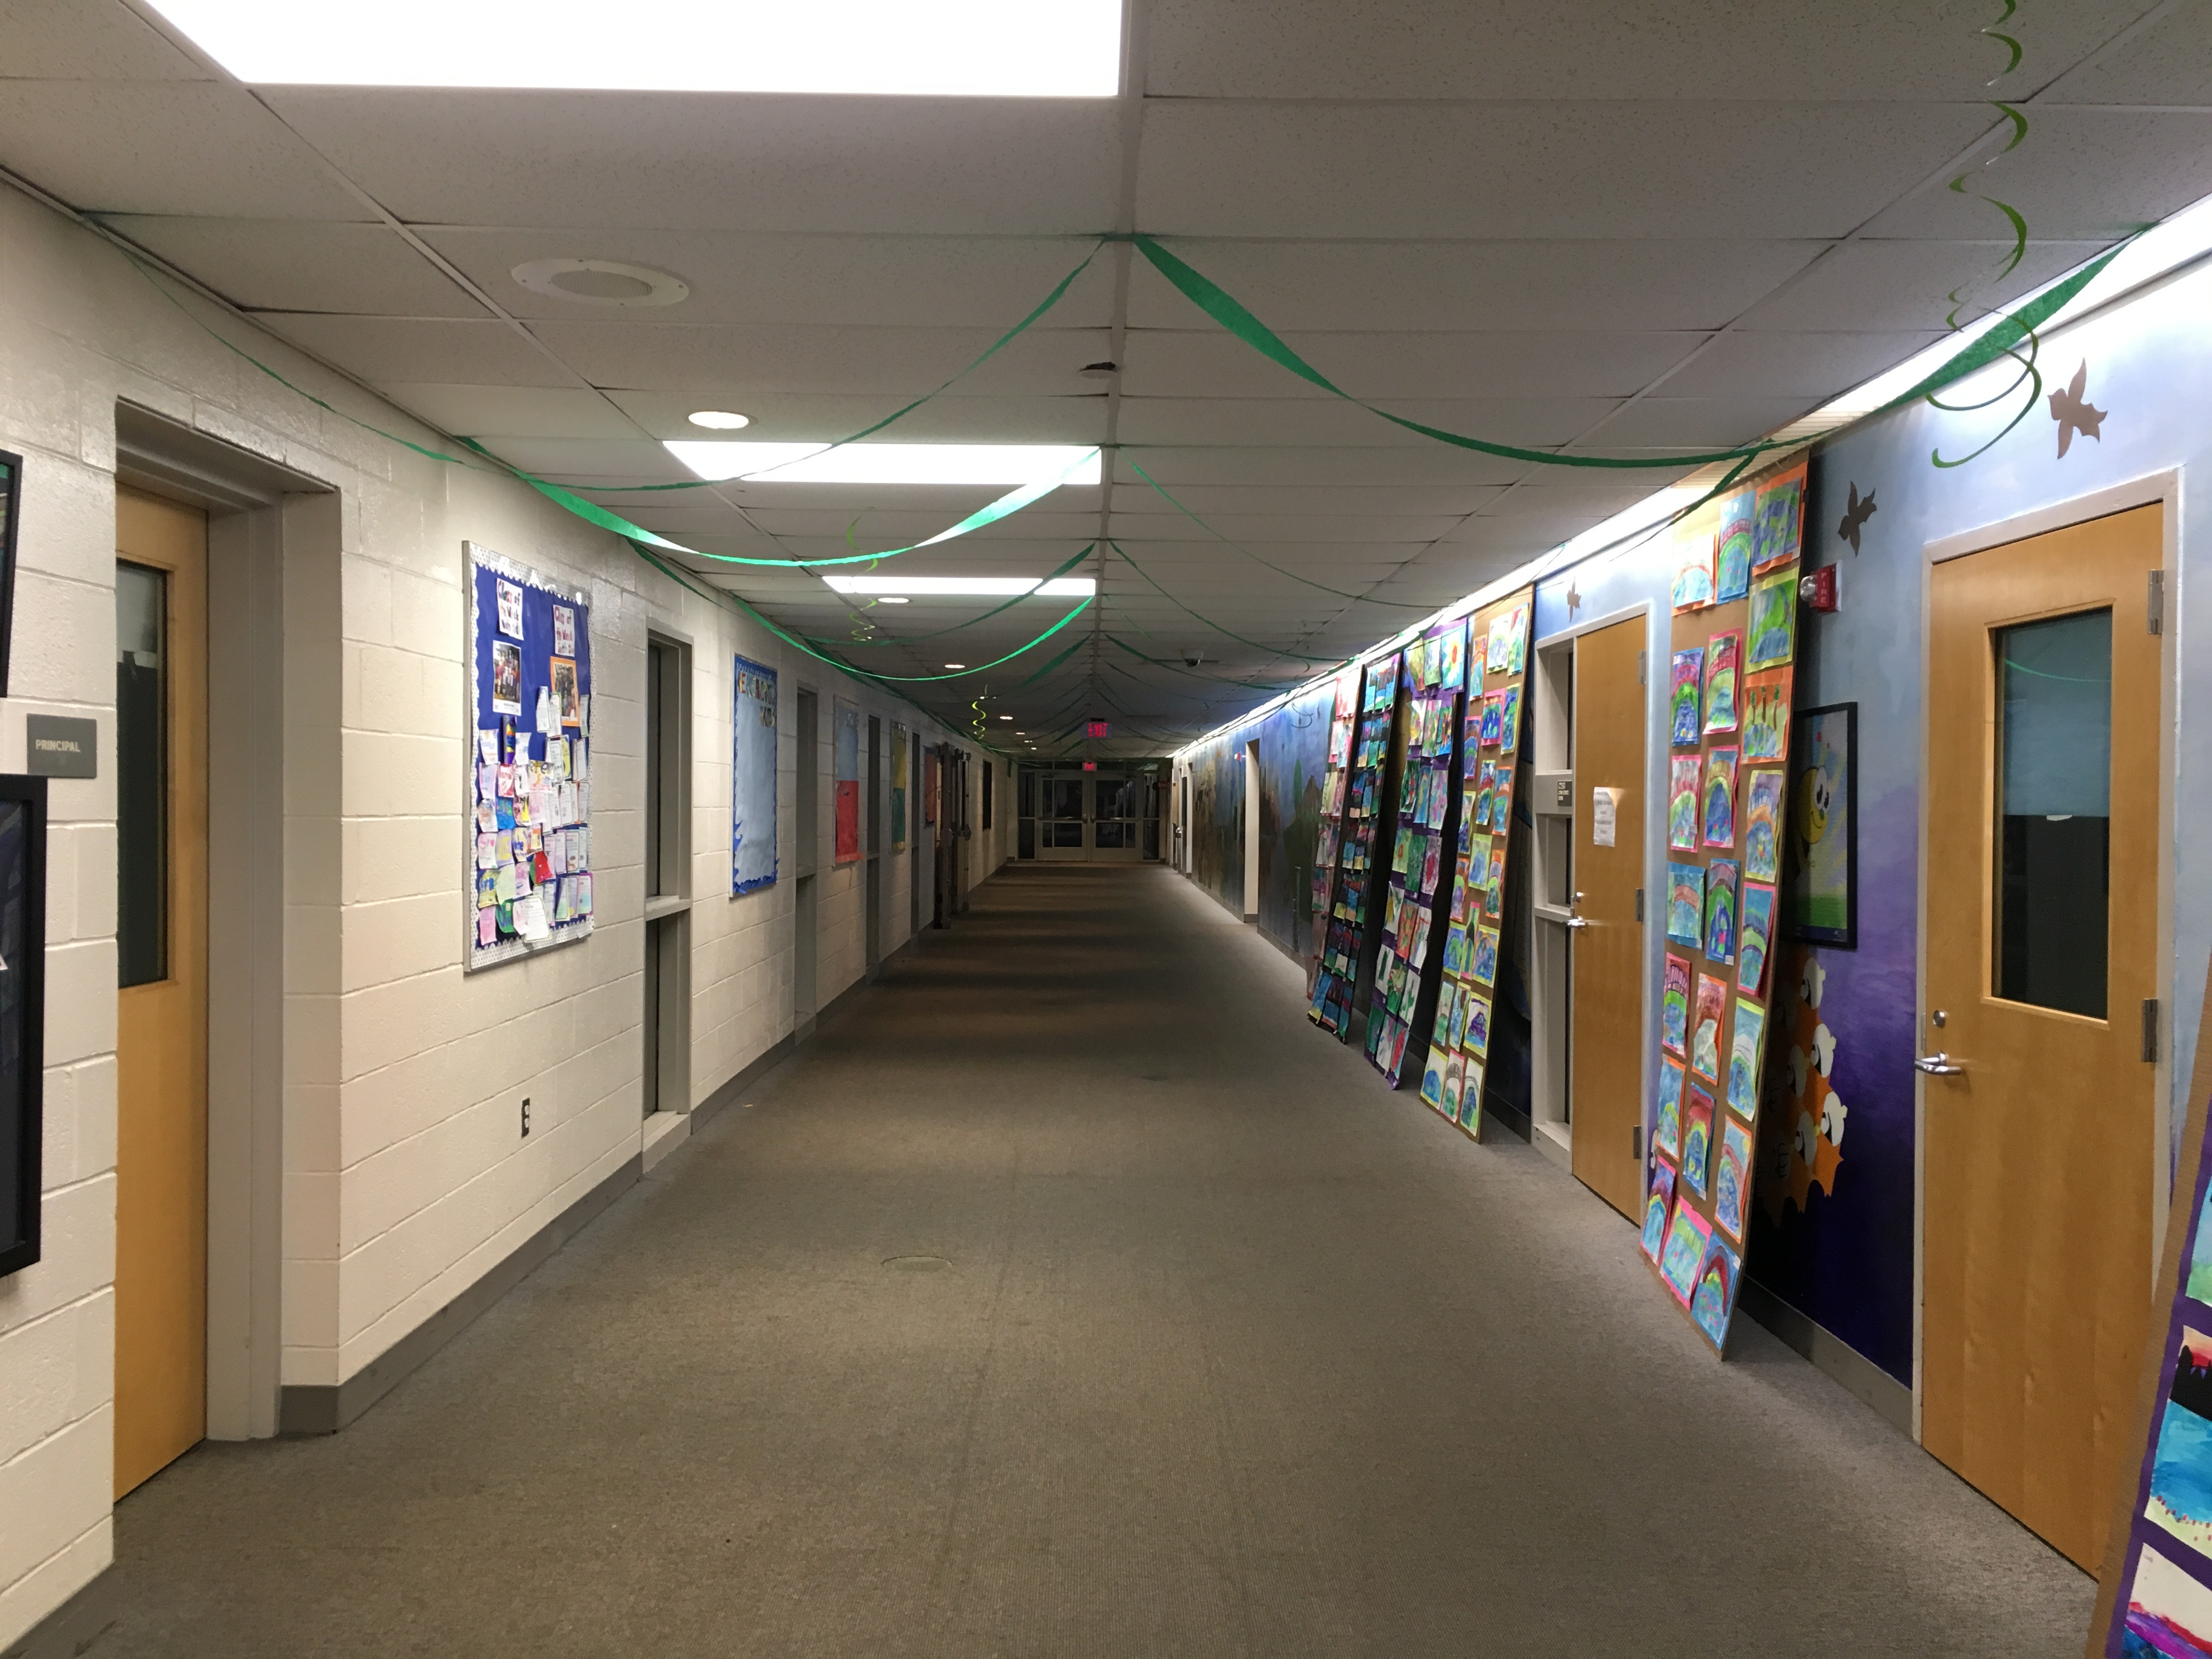 School Decorated for the Week!